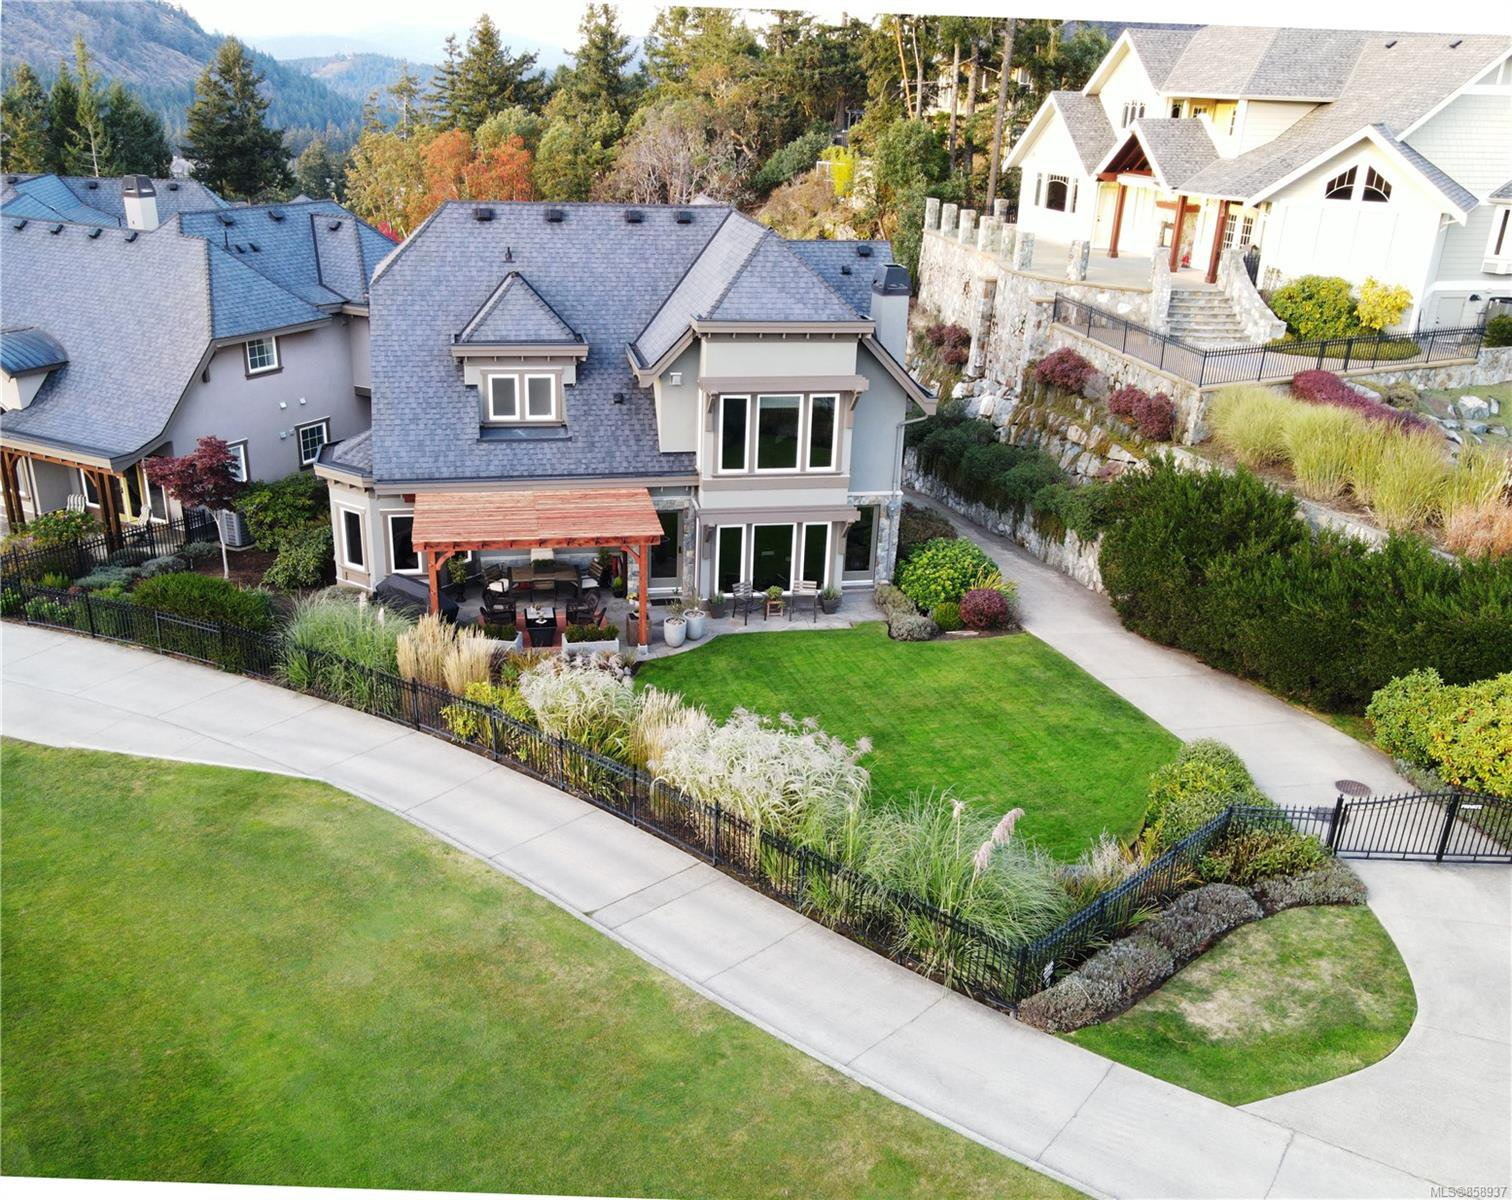 Main Photo: 2224 Island Falls Pl in : La Bear Mountain House for sale (Langford)  : MLS®# 858937